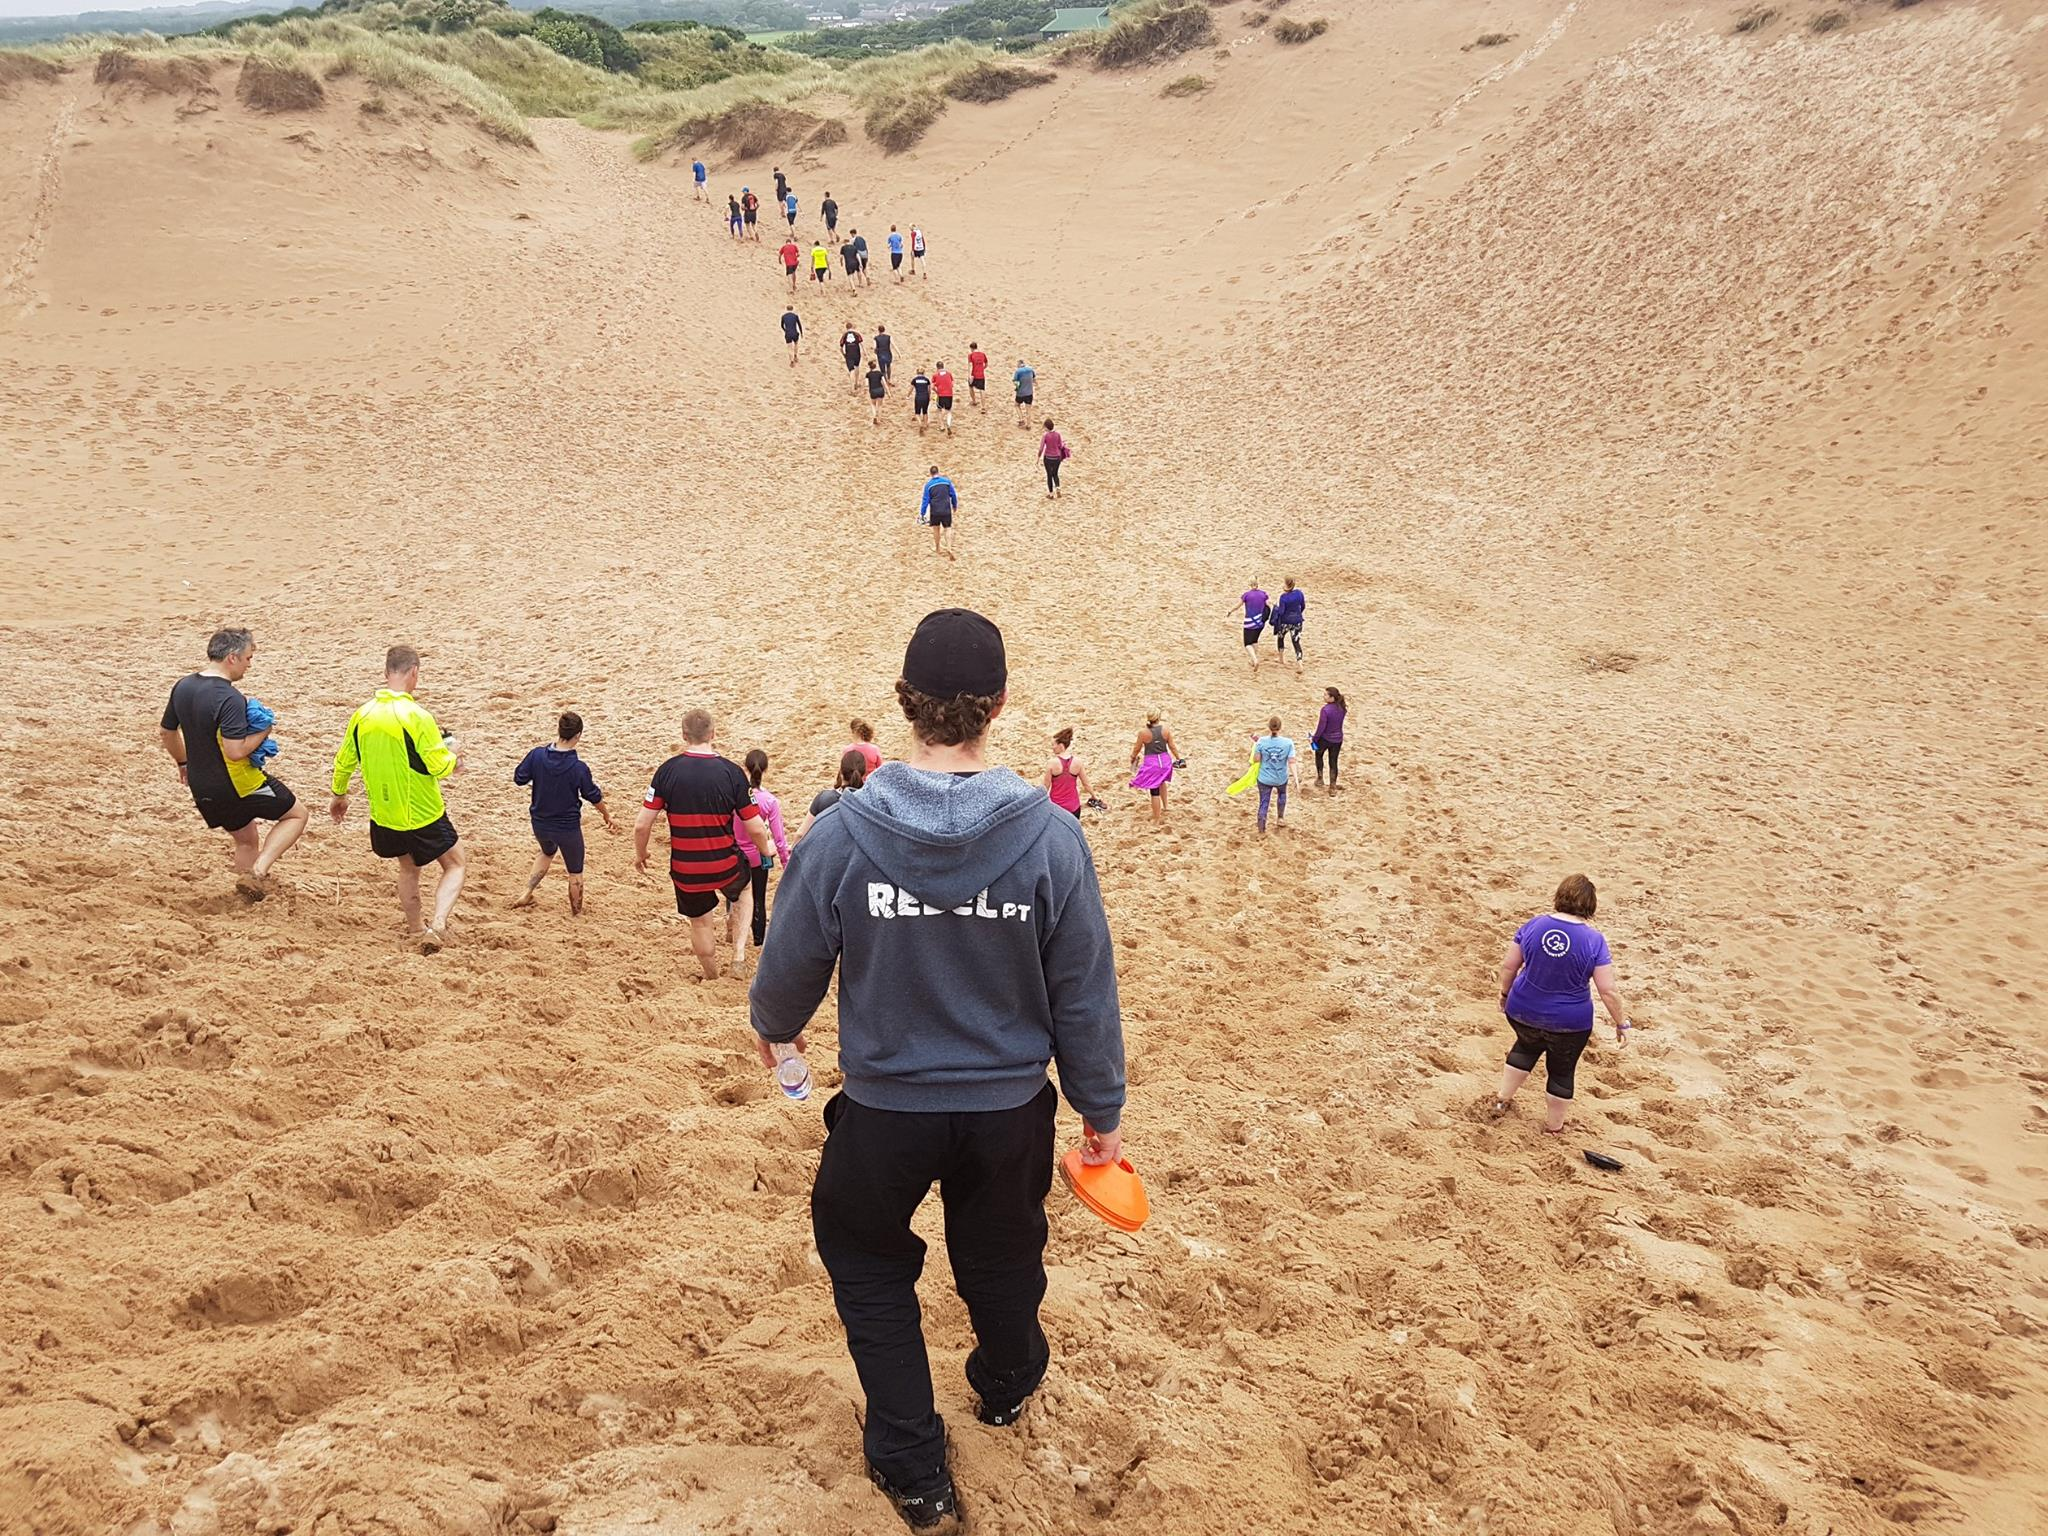 beach training at balmedie, Aberdeen rebel pt